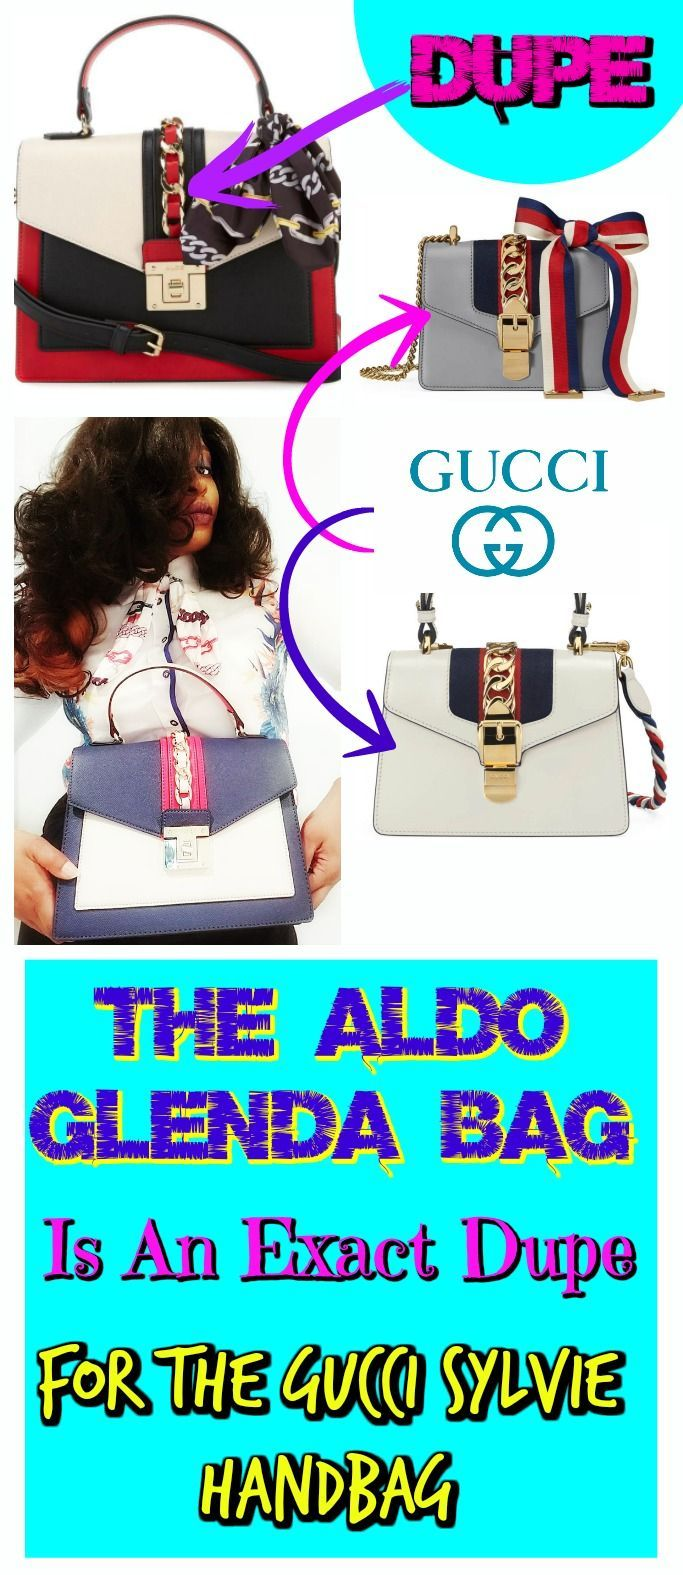 44259b1e6d This article is a review of the Aldo Glenda Bag and I will tell you why it  is a perfect Gucci Handbag Dupe. The Aldo Glenda satchel needs to be put on  ...